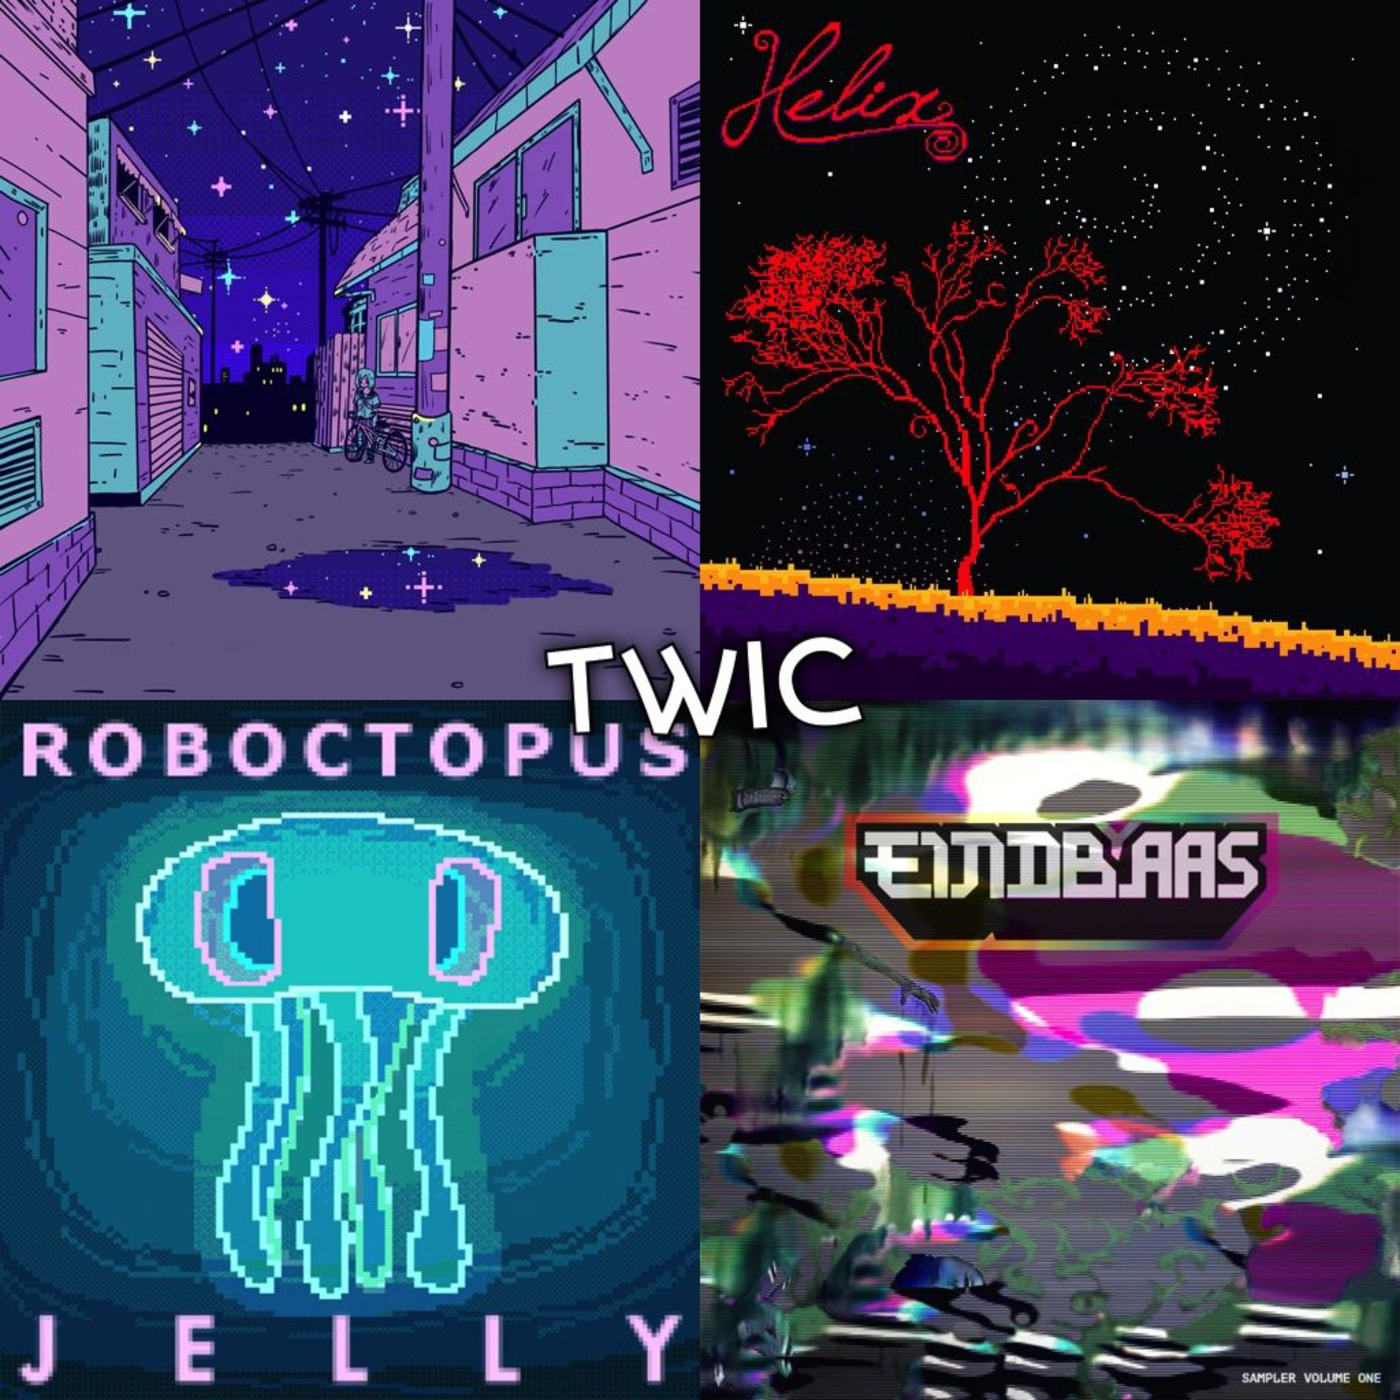 TWiC 055: EINDBAAS, astroskeleton, Roboctopus, Casshern, suspended FORCE